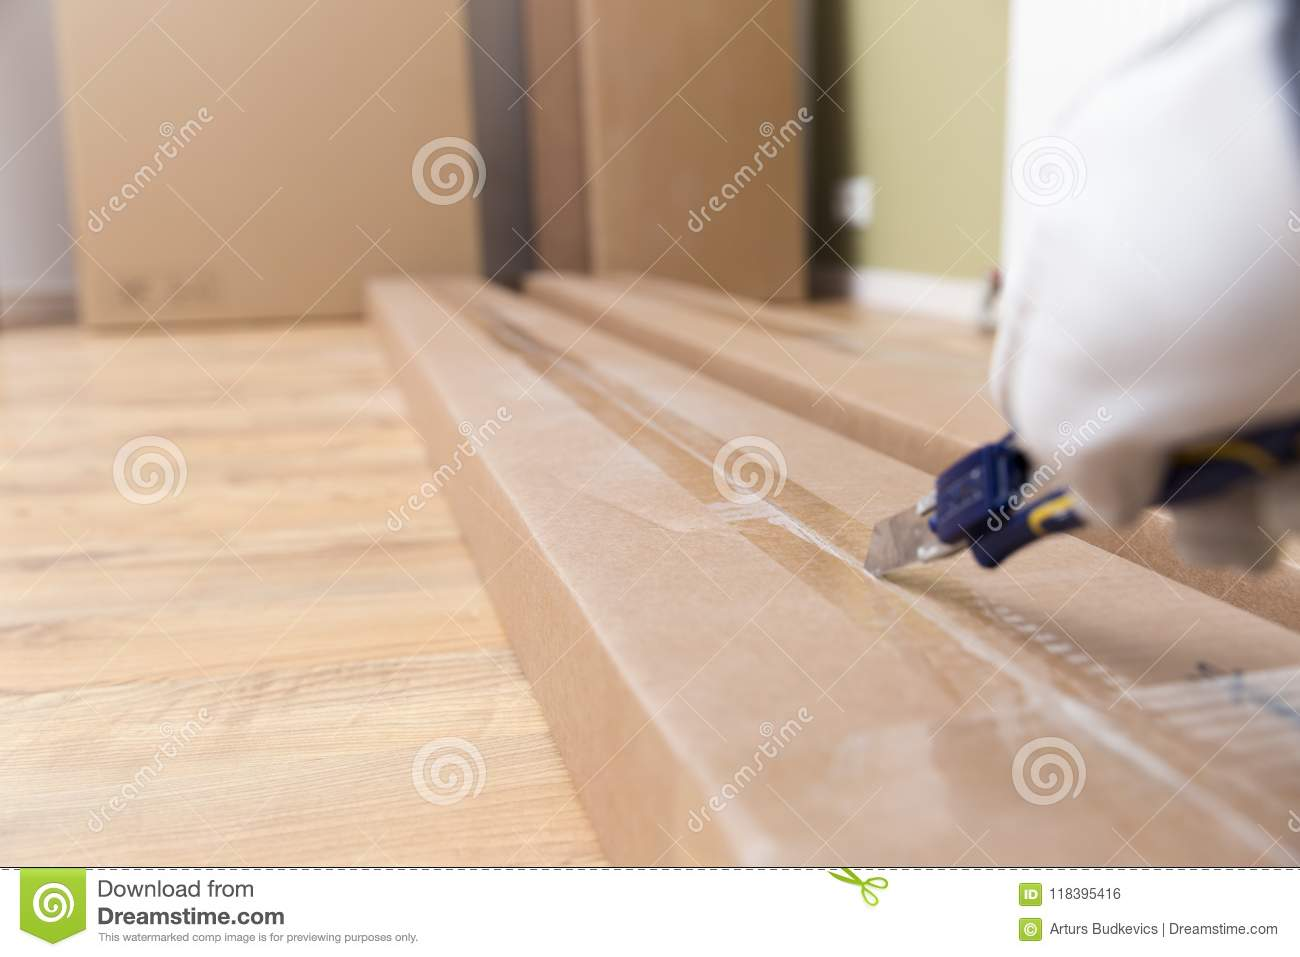 Unboxing Of Cardboard Box Of New Furniture With Construction Knife Moving To New House Purchase Of New Furniture Stock Photo Image Of Package Flat 118395416